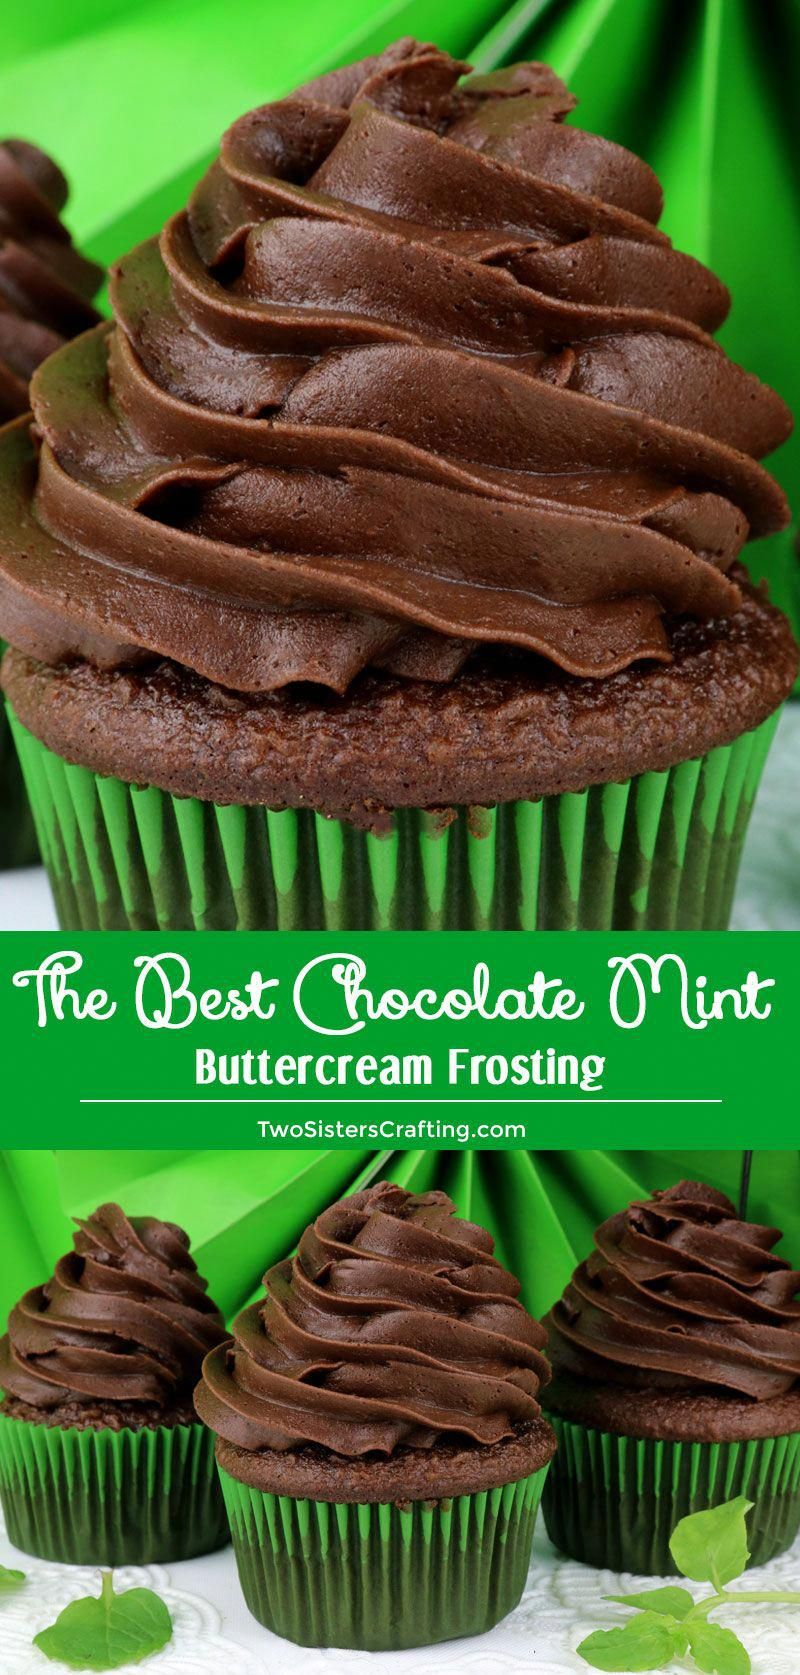 The Best Chocolate Mint Buttercream Frosting is the perfect combination of chocolate and mint in one easy to make homemade buttercream frosting! If you like Thin Mints you will love this Homemade Frosting. Pin this great Frosting idea for later and follow us for more great Frosting Recipes!